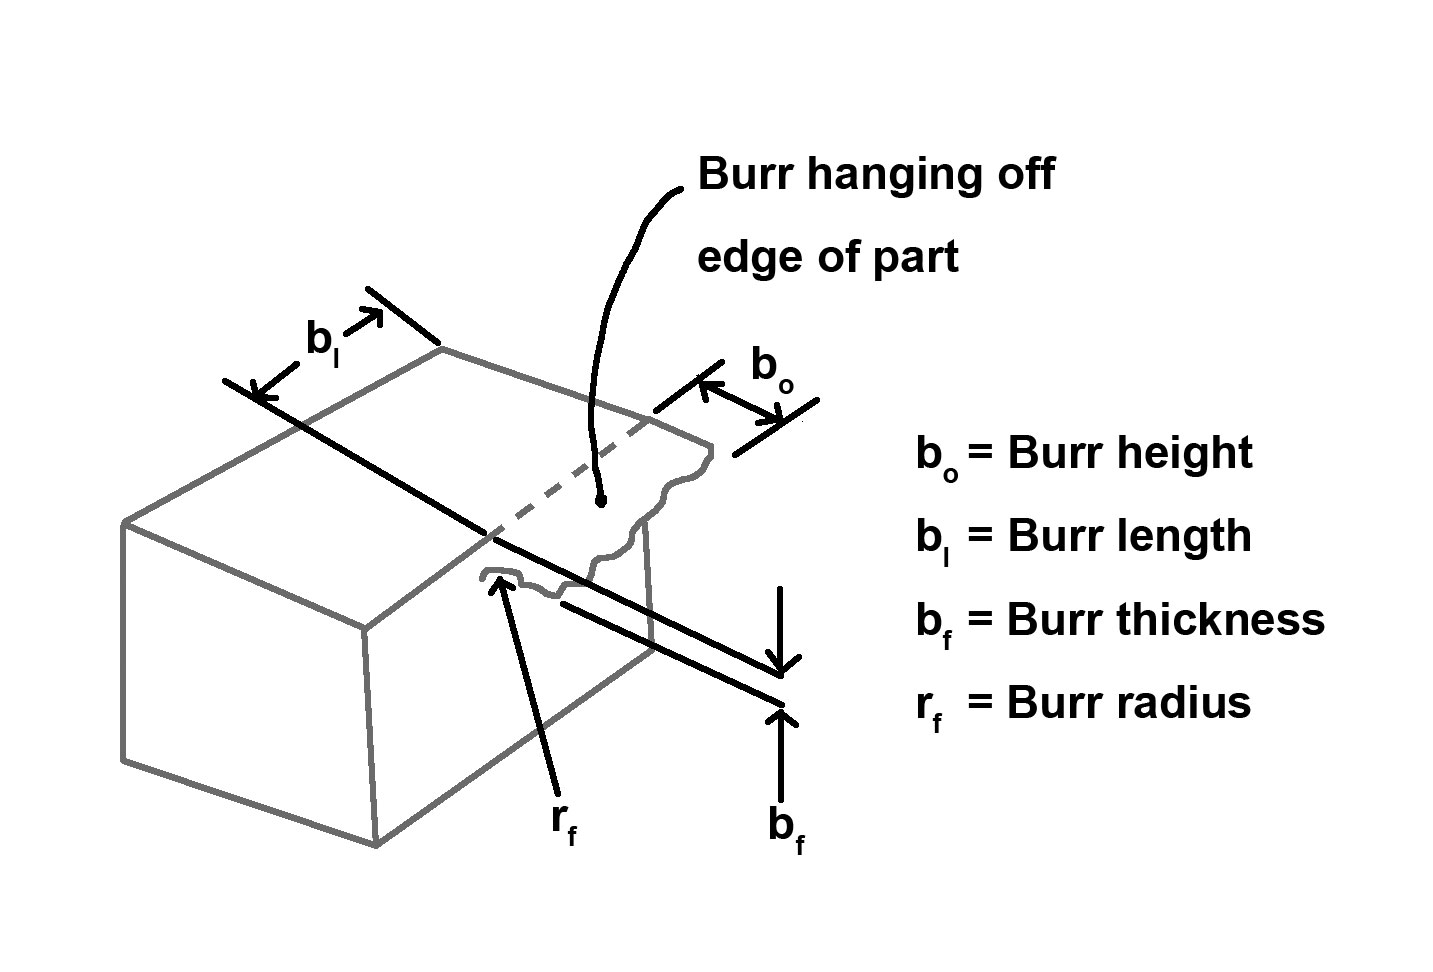 FIG 1 - Burr measurements includes: burr height, burr length, burr thickness and radius.